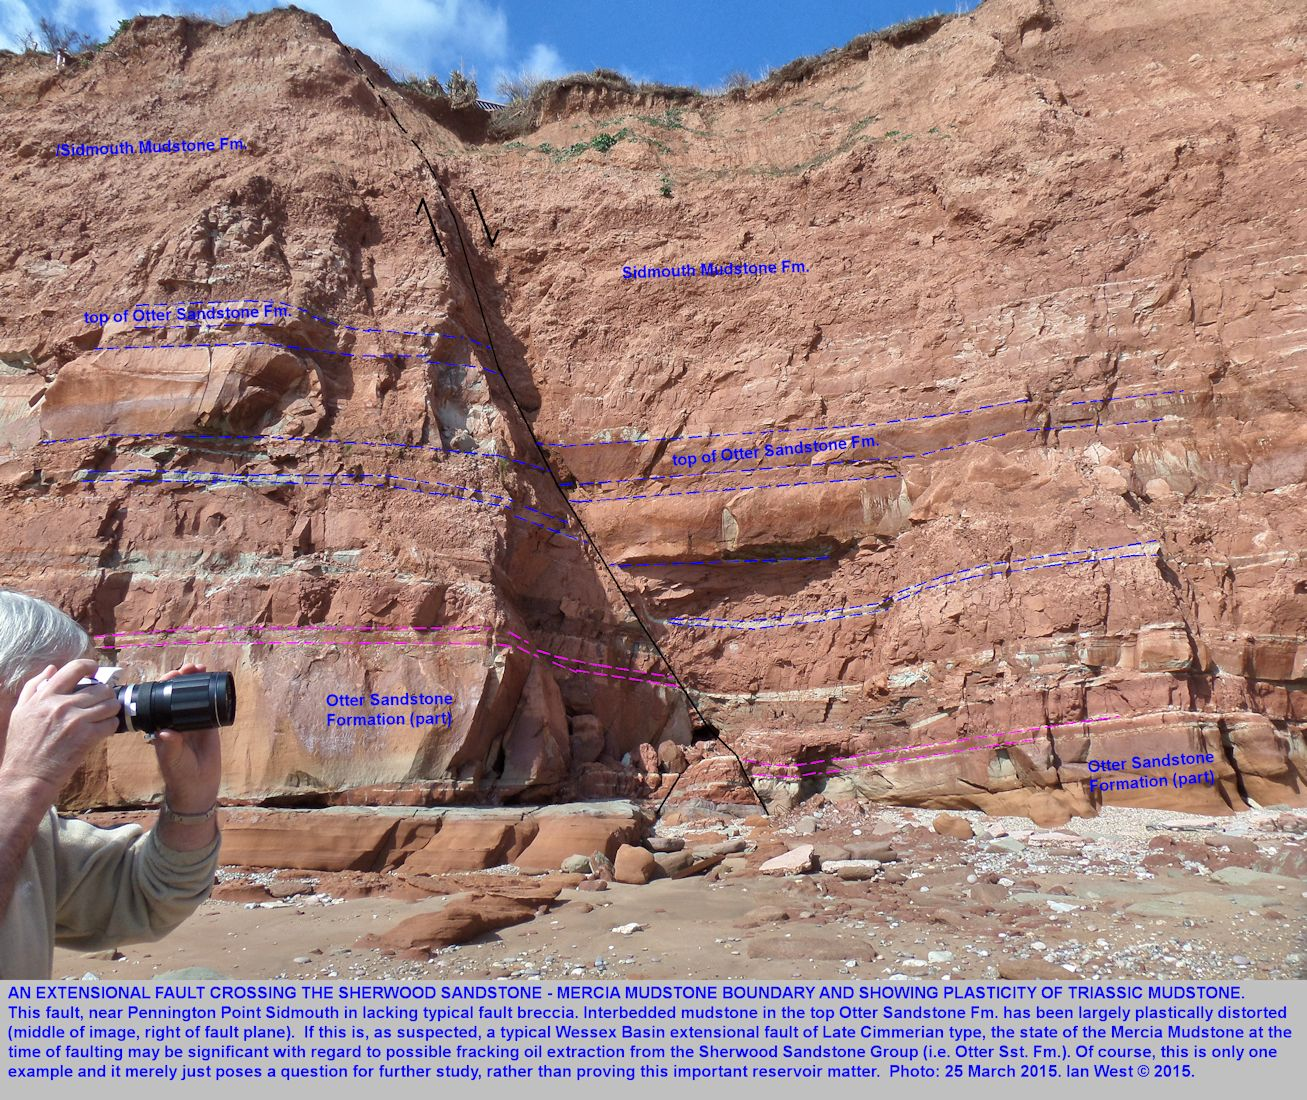 An extensional normal fault near Pennington Point, Sidmouth, Devon, with apparent plastic displacement of mudstone, 25th March 2015